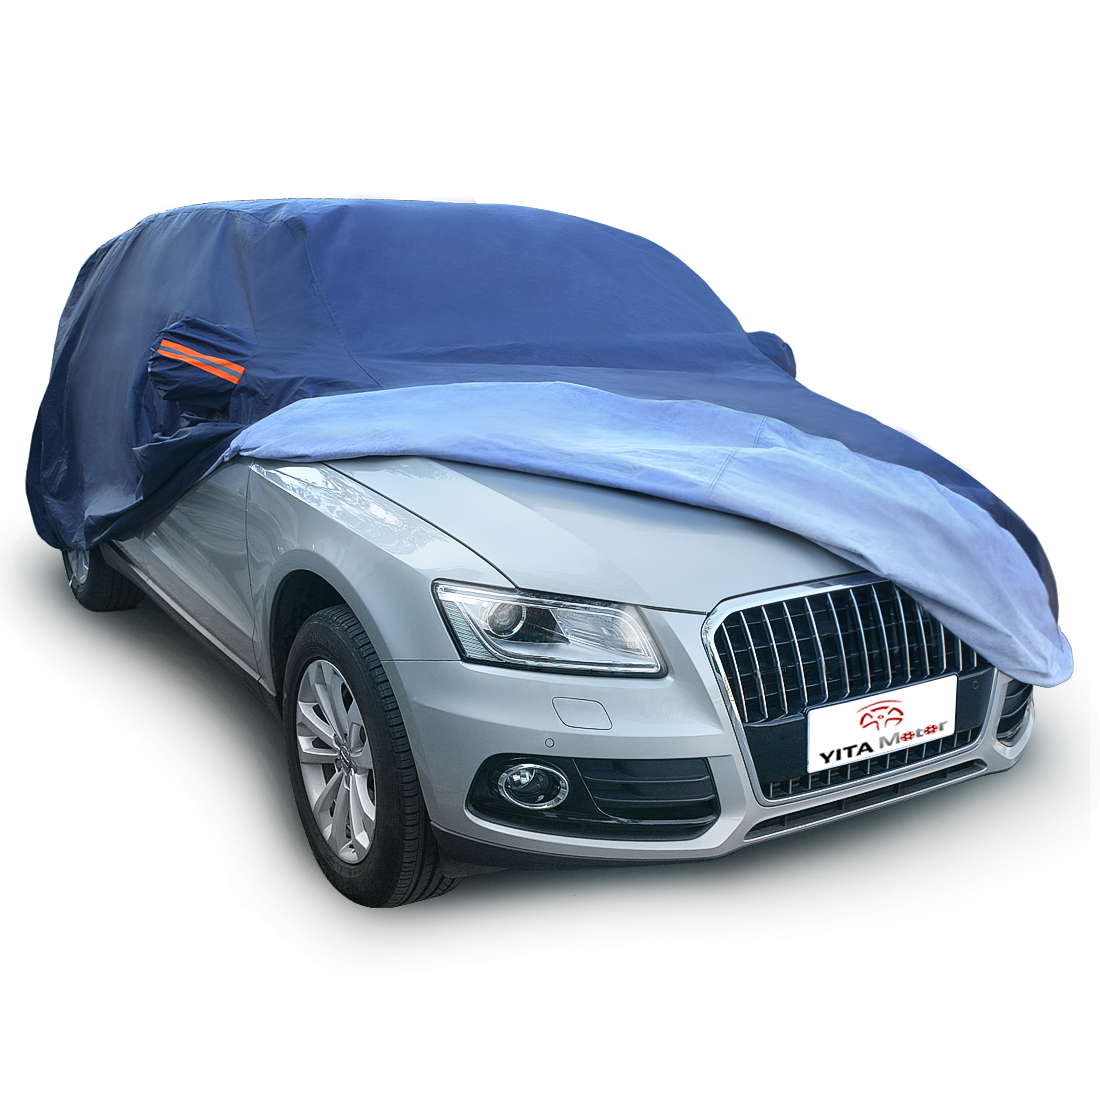 hight resolution of peva universal fit breathable car cover outdoor waterproof uv snow rain dust resistant suv 3xxl fits up to 208 inches dark blue walmart com